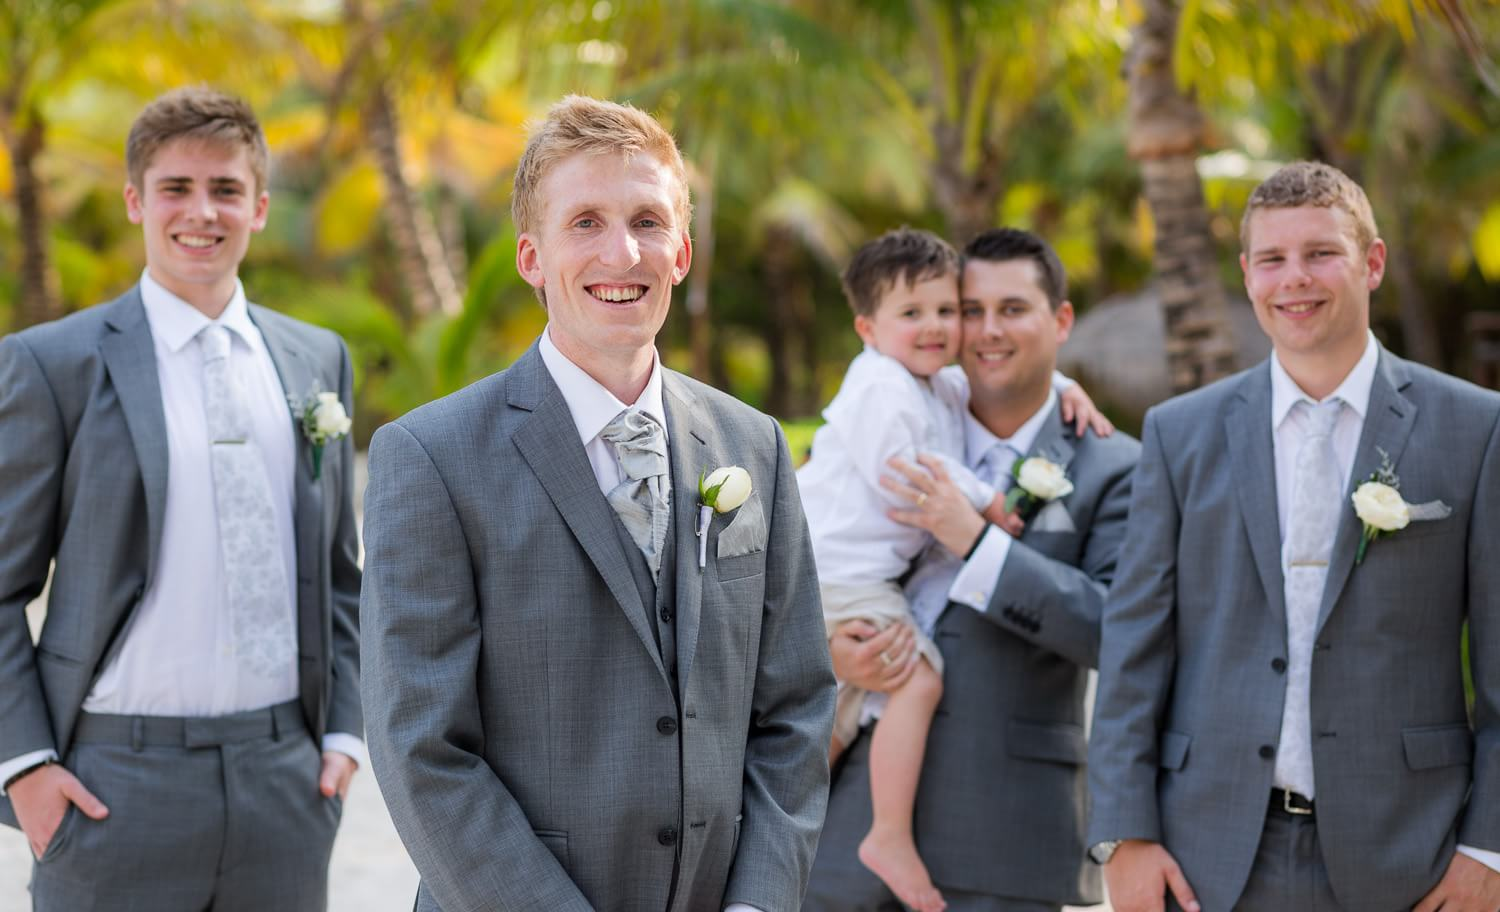 Groomsmen on beach at wedding in Mexico.